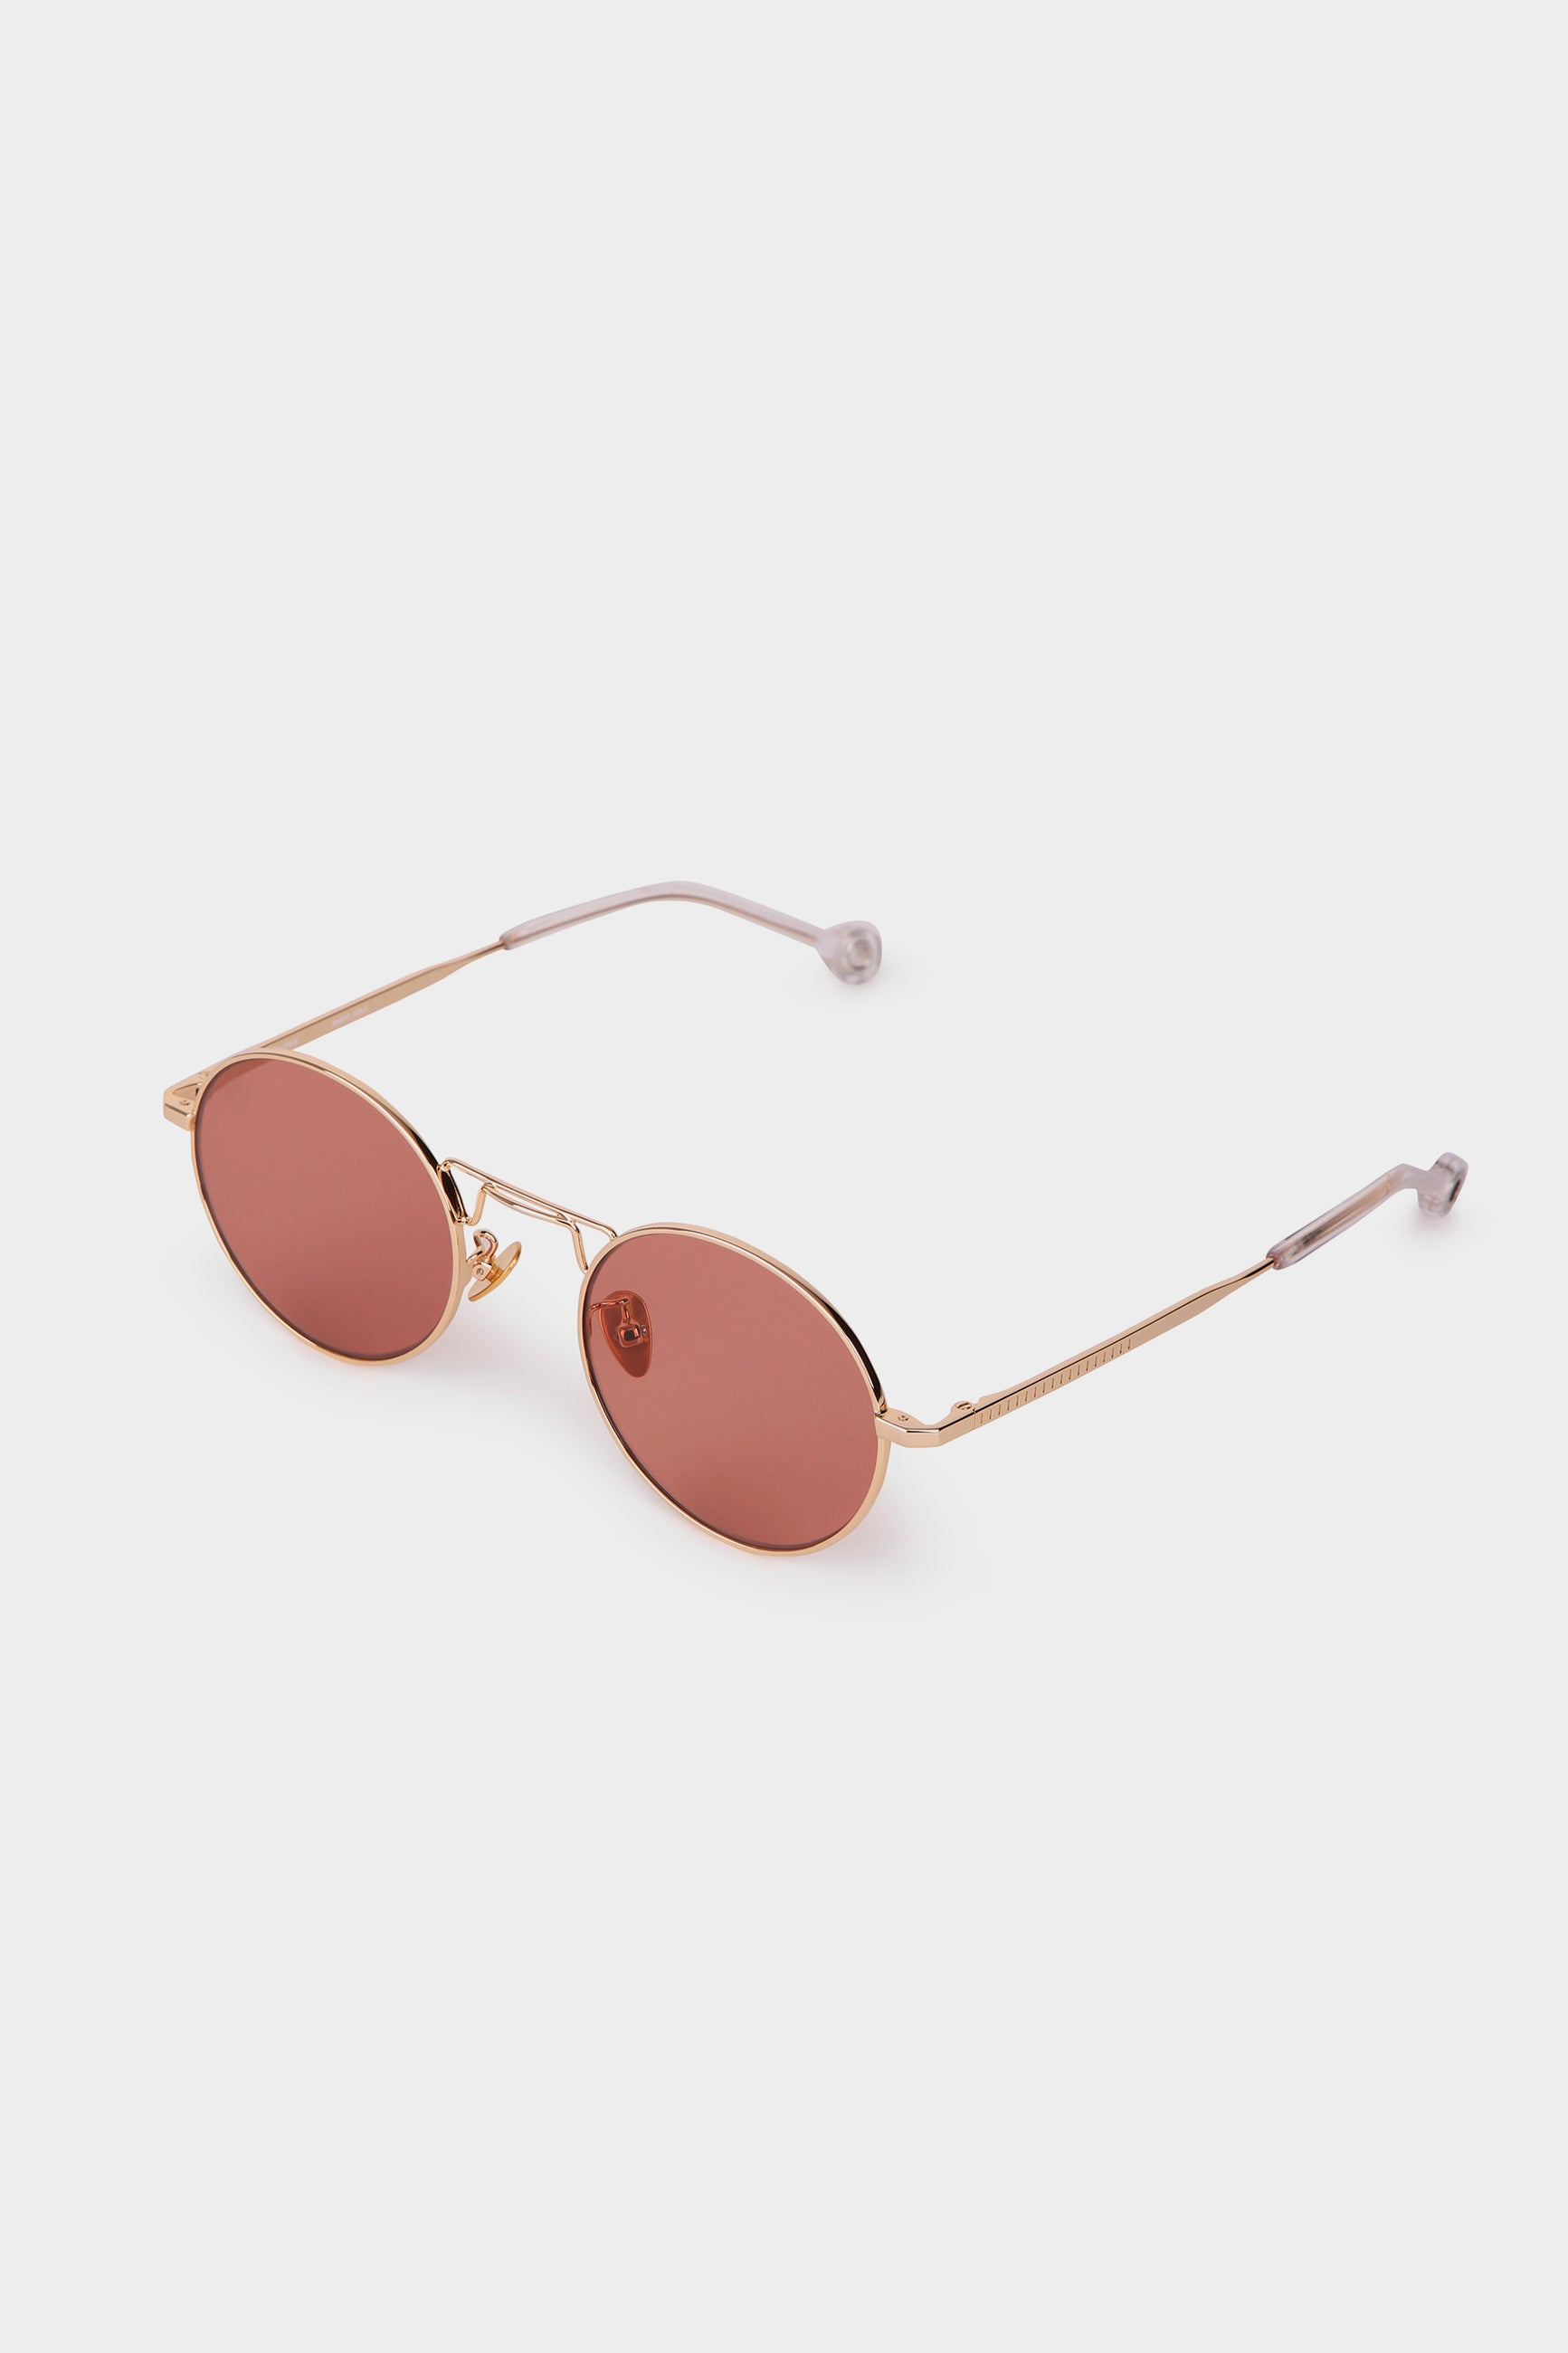 Études Resist Gold Pink Sunglasses 3